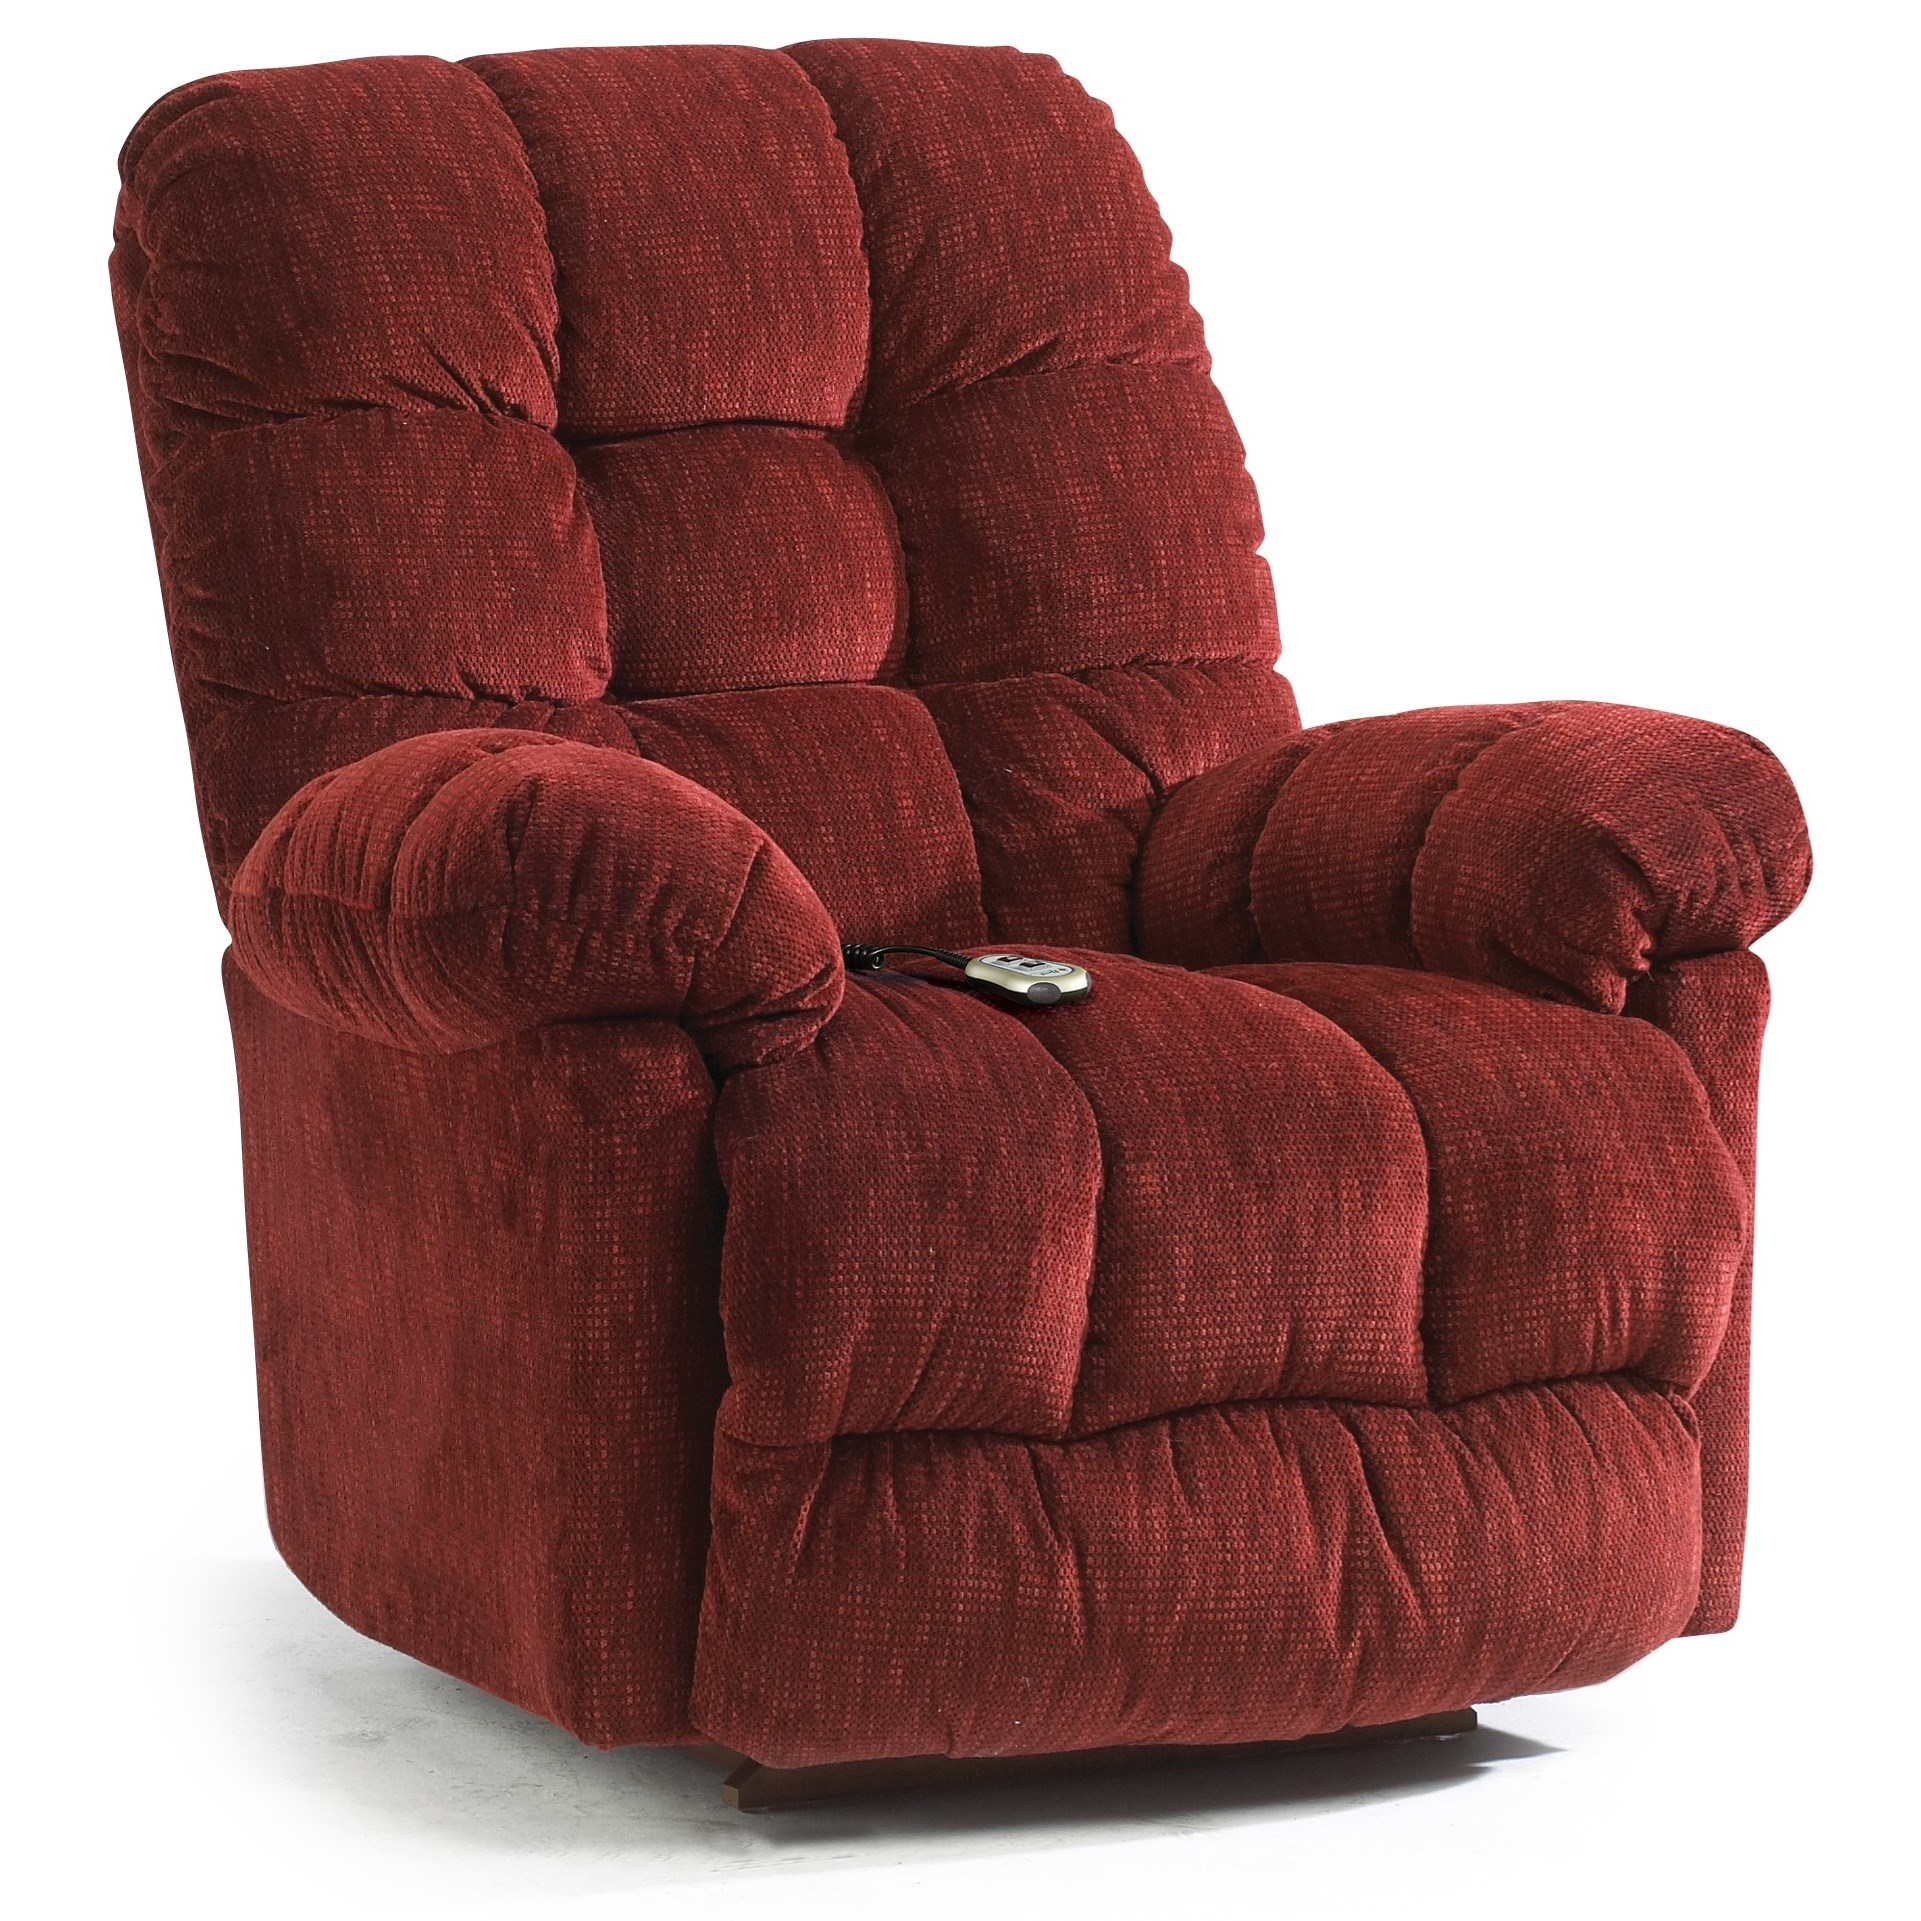 Best Home Furnishings Recliners - Medium Brosmer Power Wallhugger Recliner - Item Number: 9MP84-1